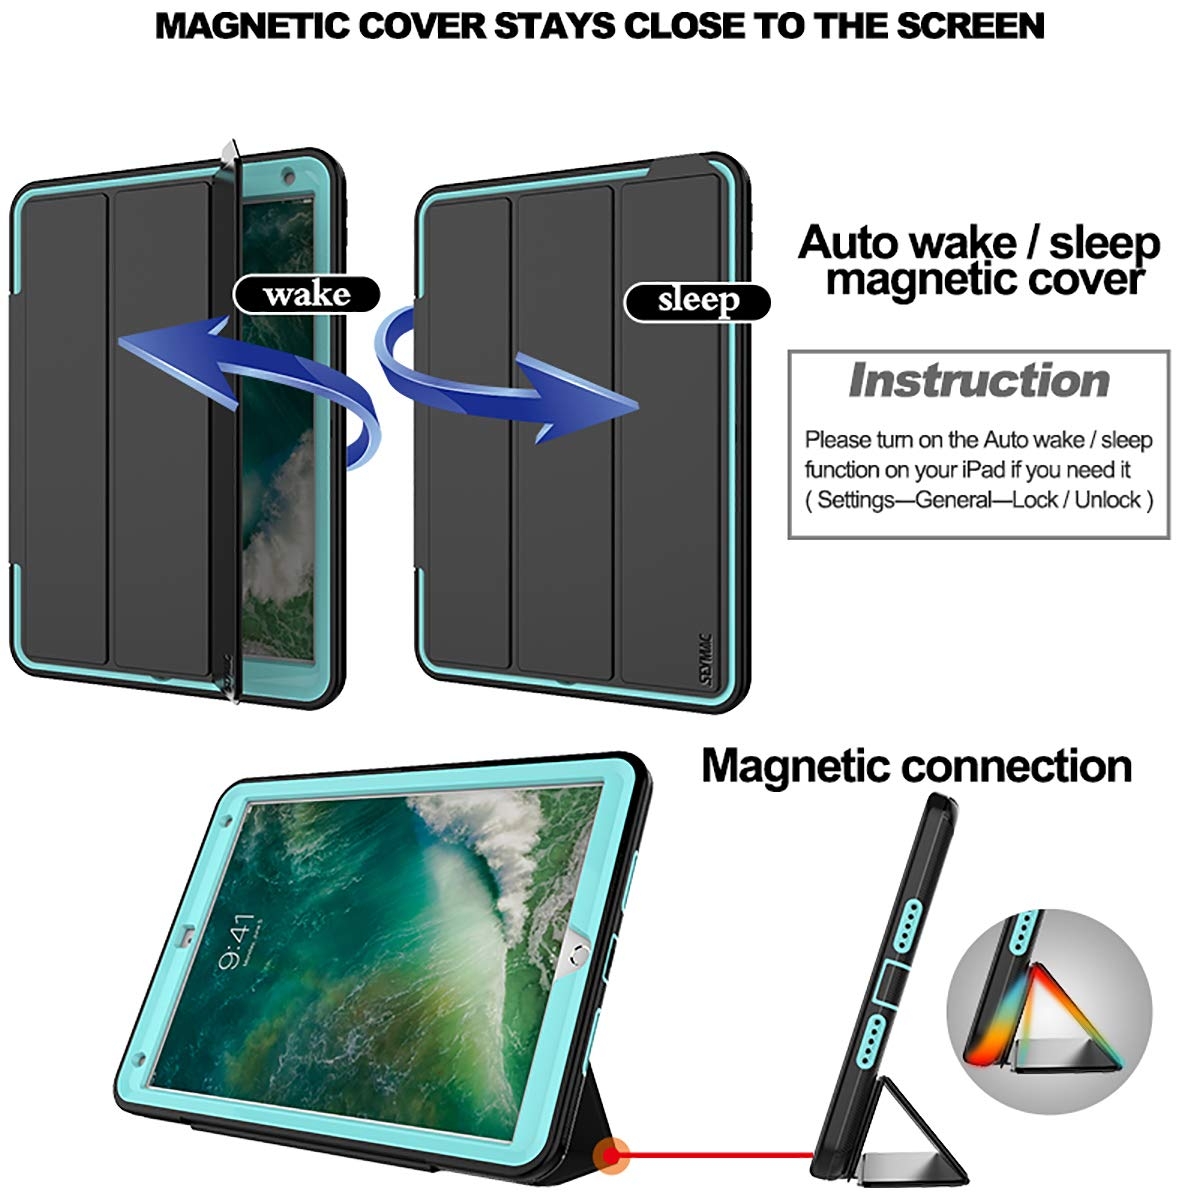 SEYMAC iPad Pro 10.5 Case, 3 Layer Heavy Duty Rugged Shockproof Drop Protective Folio Stand Case with Magnetic Smart Auto Wake Sleep Cover for iPad Pro 10.5 [A1701, A1709] Black/Light Blue